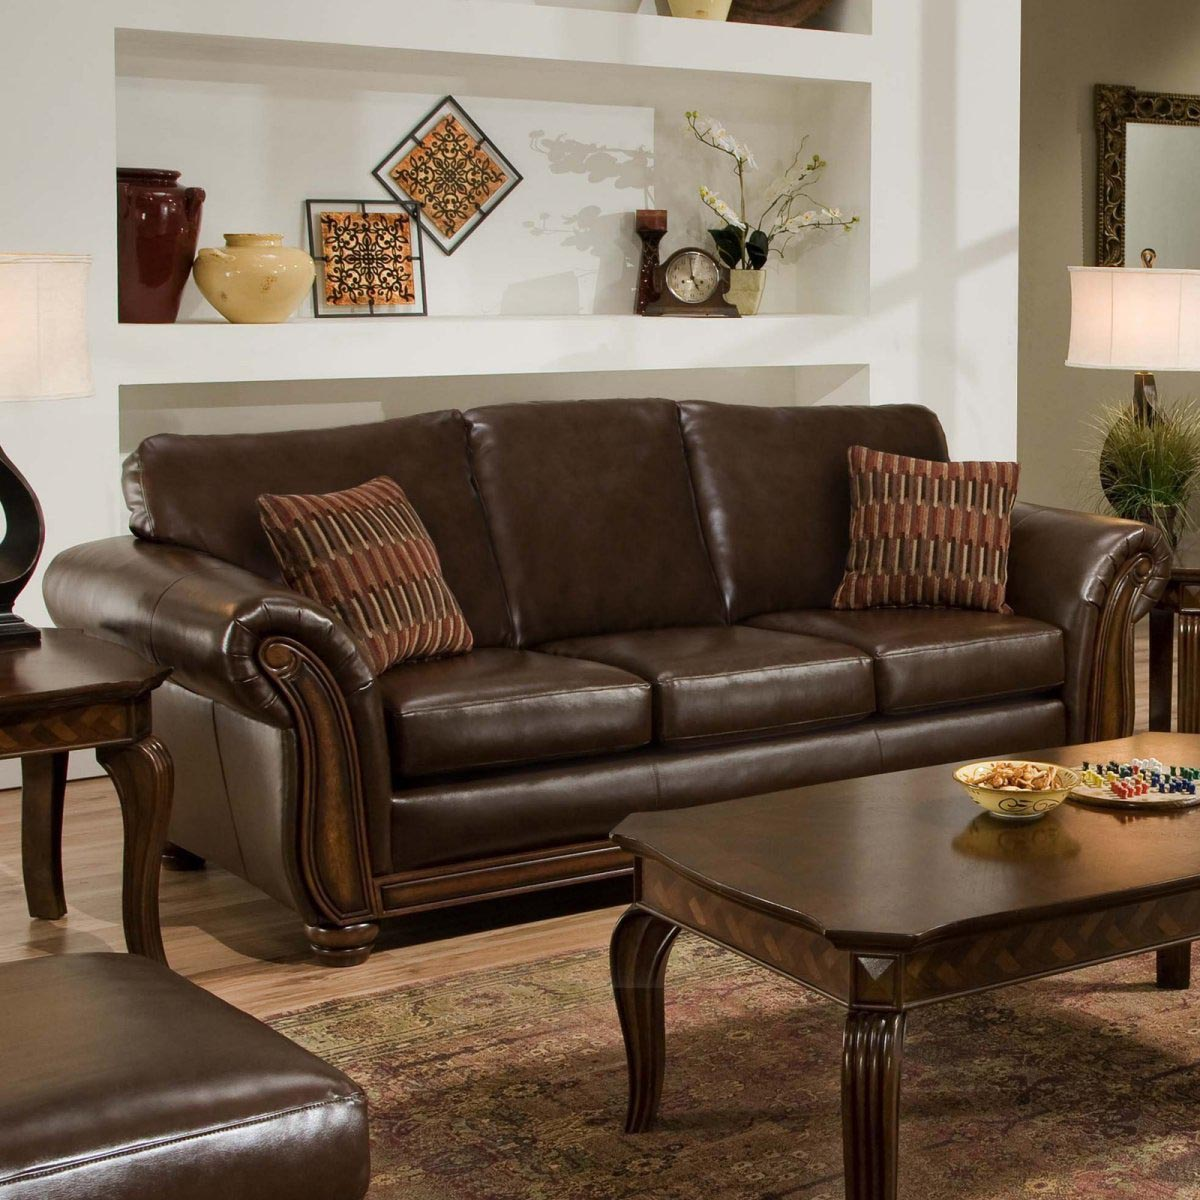 Throw Pillows For Brown Couch : Throw Pillows For Brown Sofa Best Decor Things